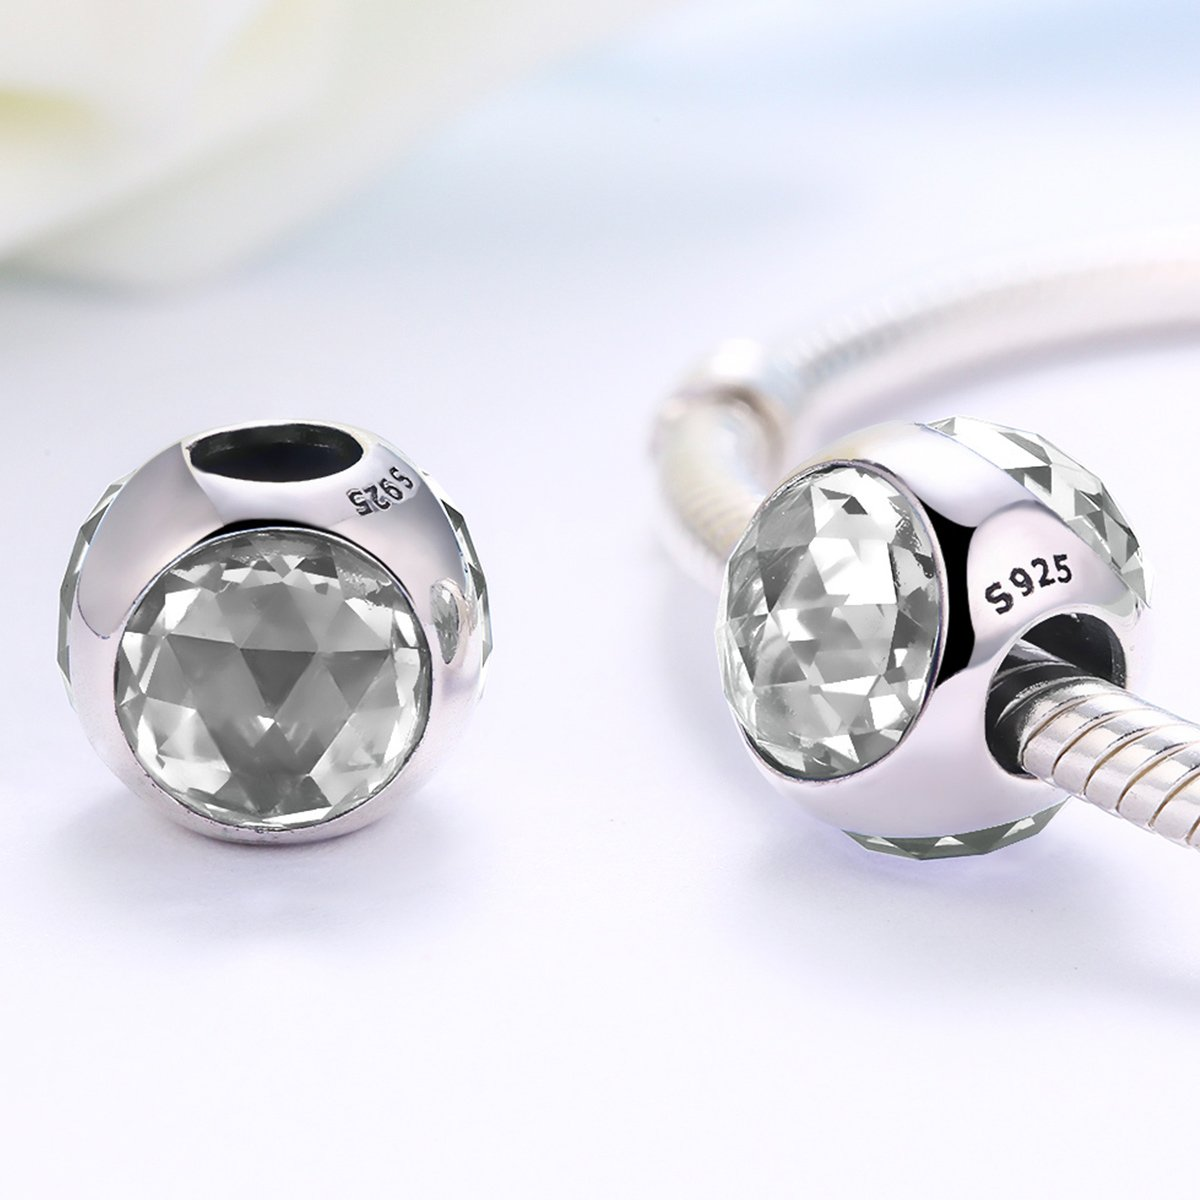 Everbling Radiant Hearts Touch of Color Pave Charm Gorgeous CZ Flower 925 Sterling Silver Bead Fits European Charm Bracelet